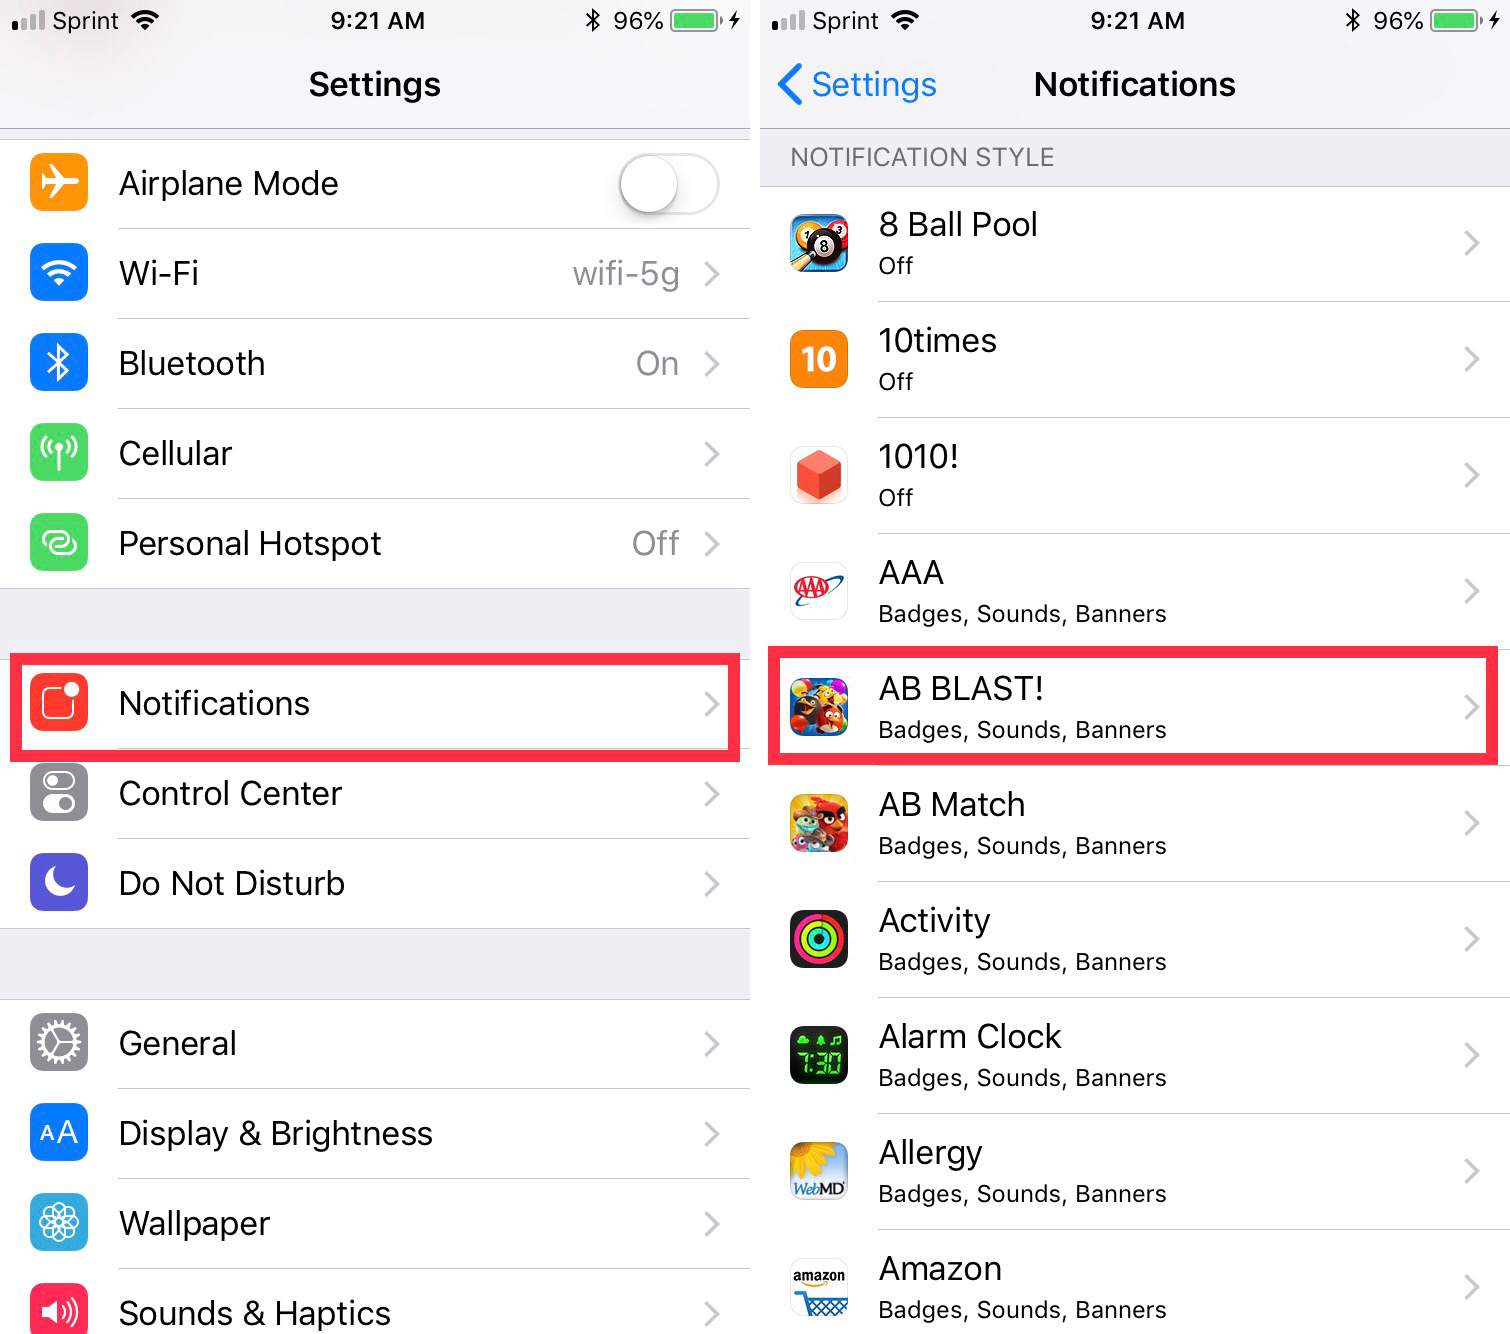 Settings Notifications App